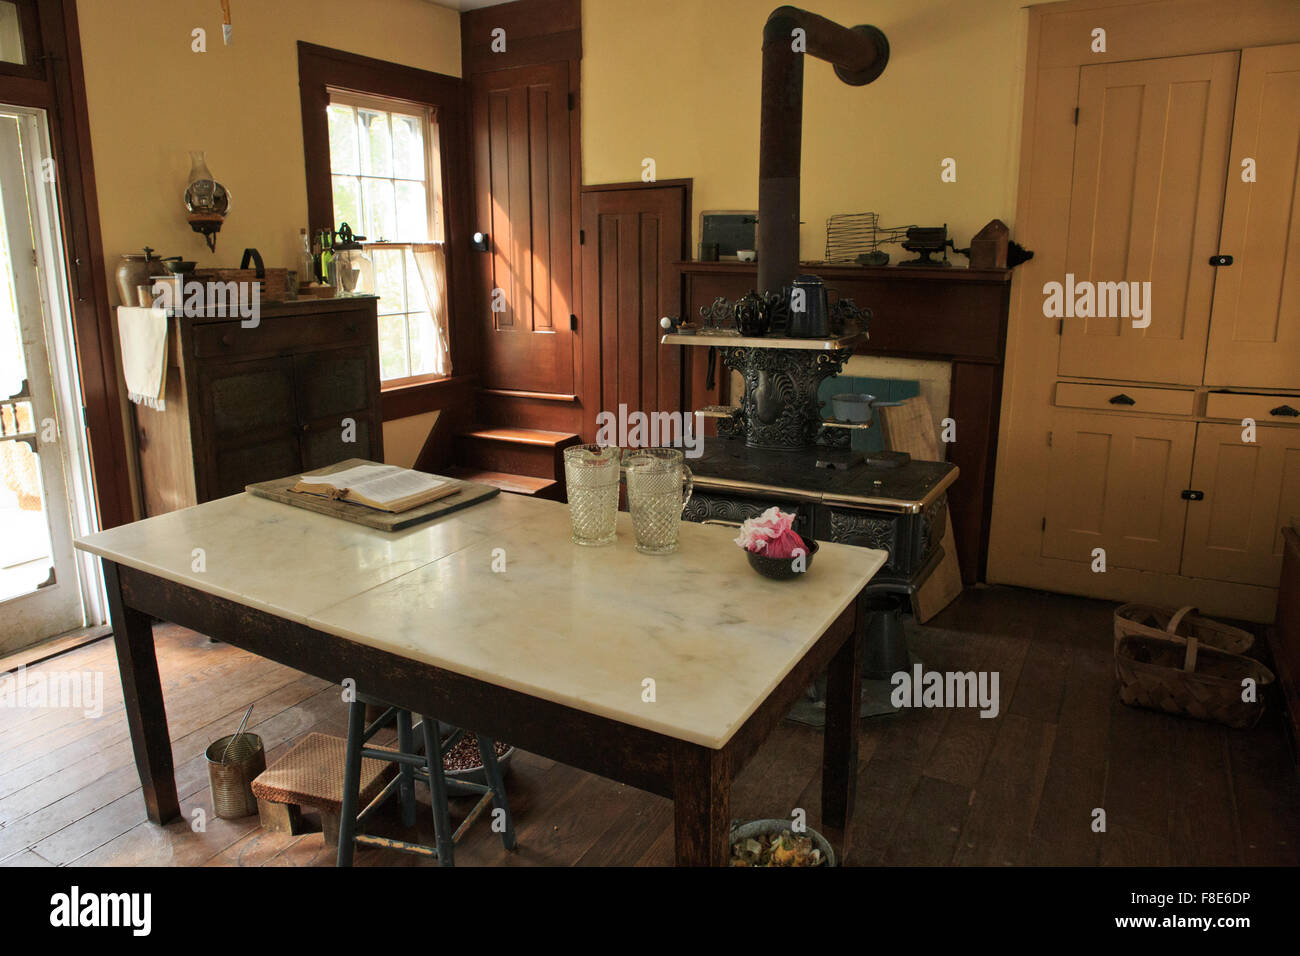 Kitchen area with cast iron stove in the background, old farmhouse. - Stock Image